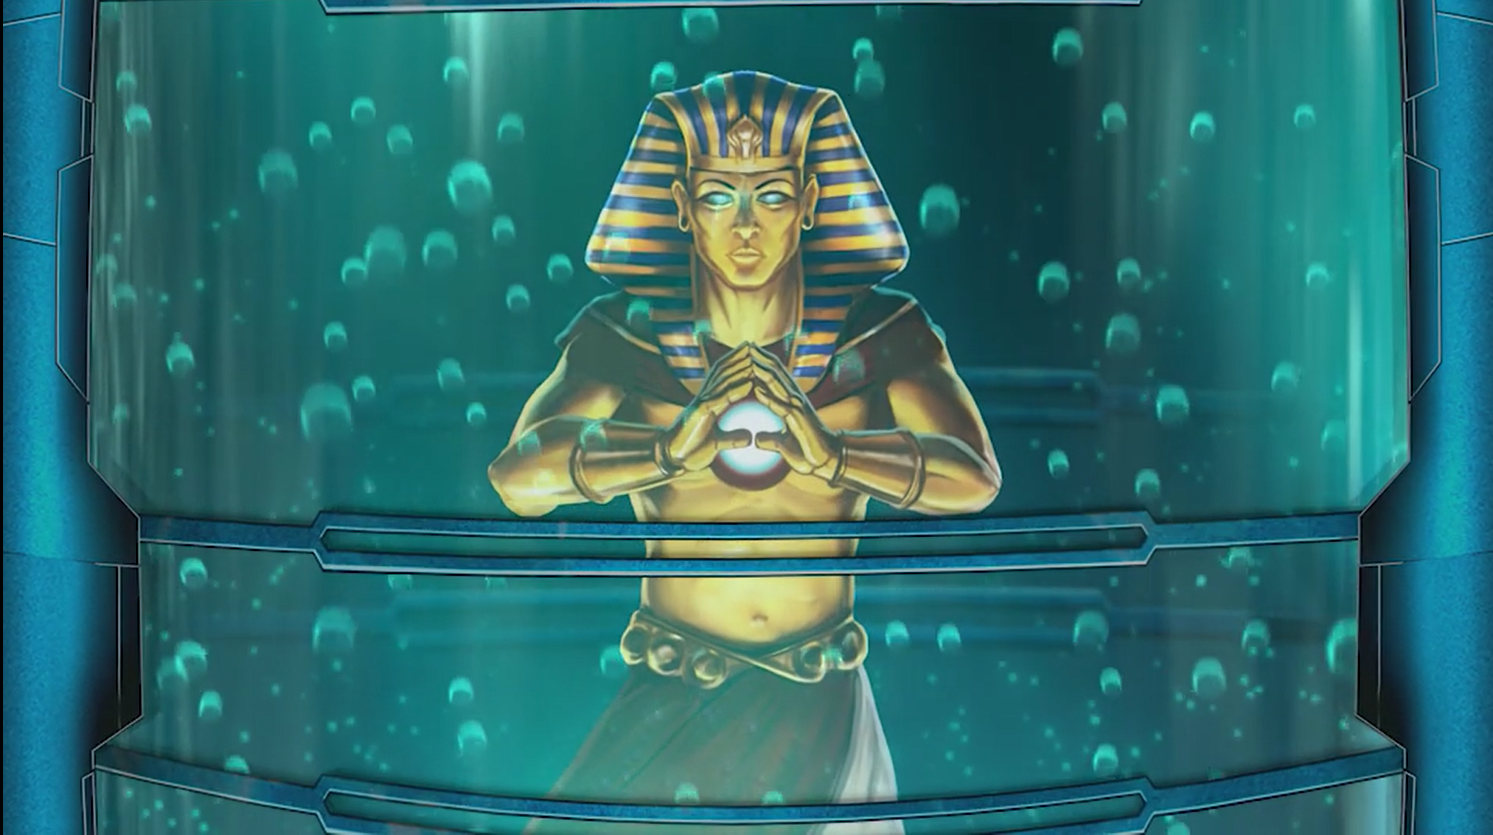 Ancient aliens the game android apps on google play ancient aliens the game screenshot pronofoot35fo Gallery